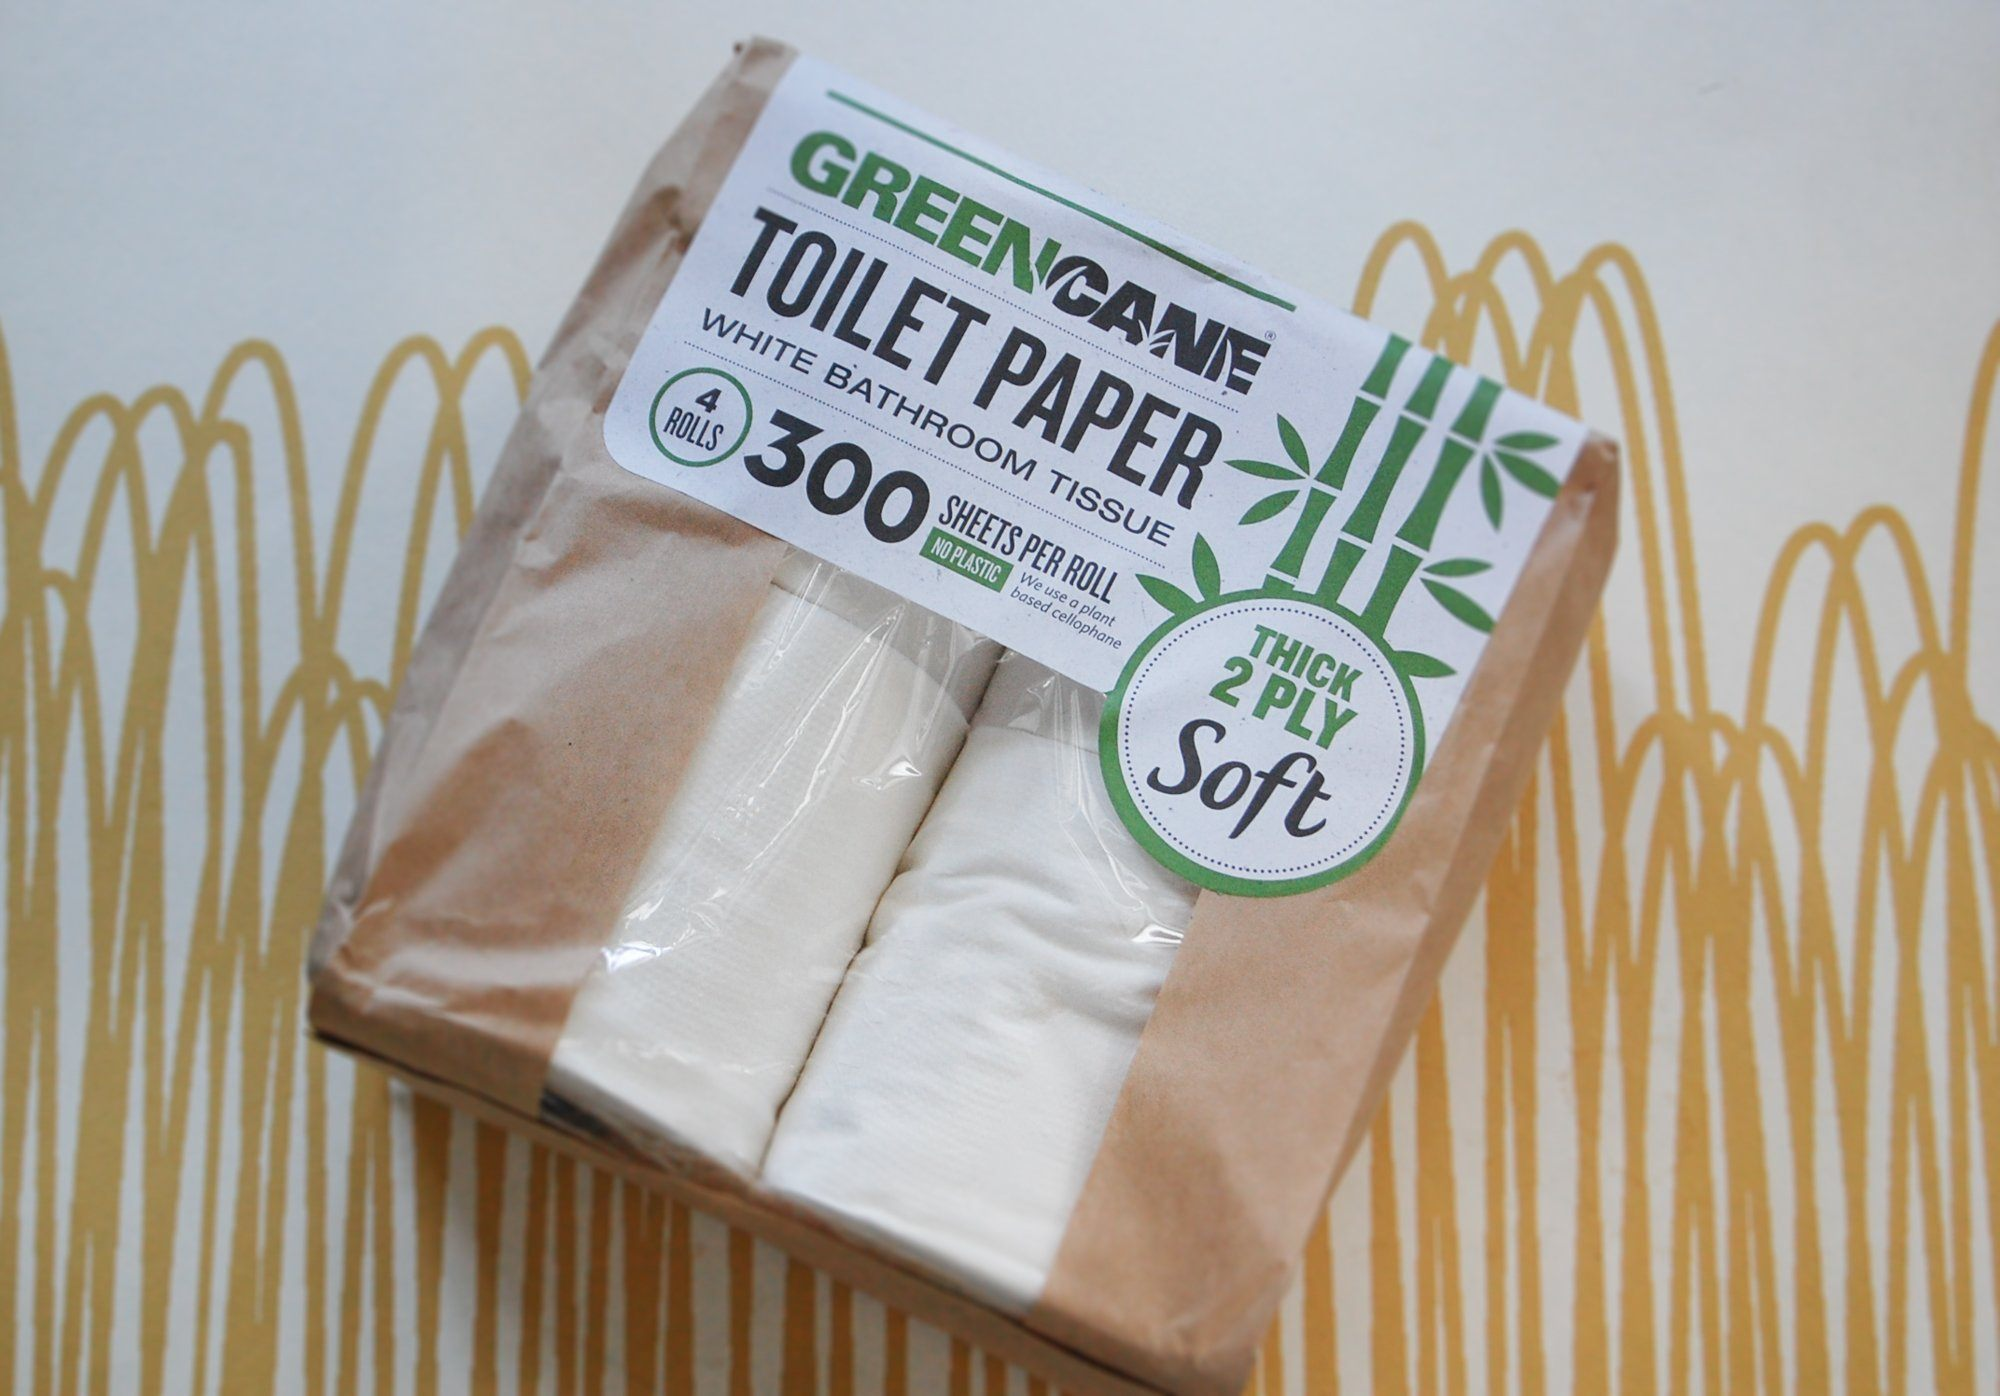 Toilet Paper, Green Cane (pack of 4)